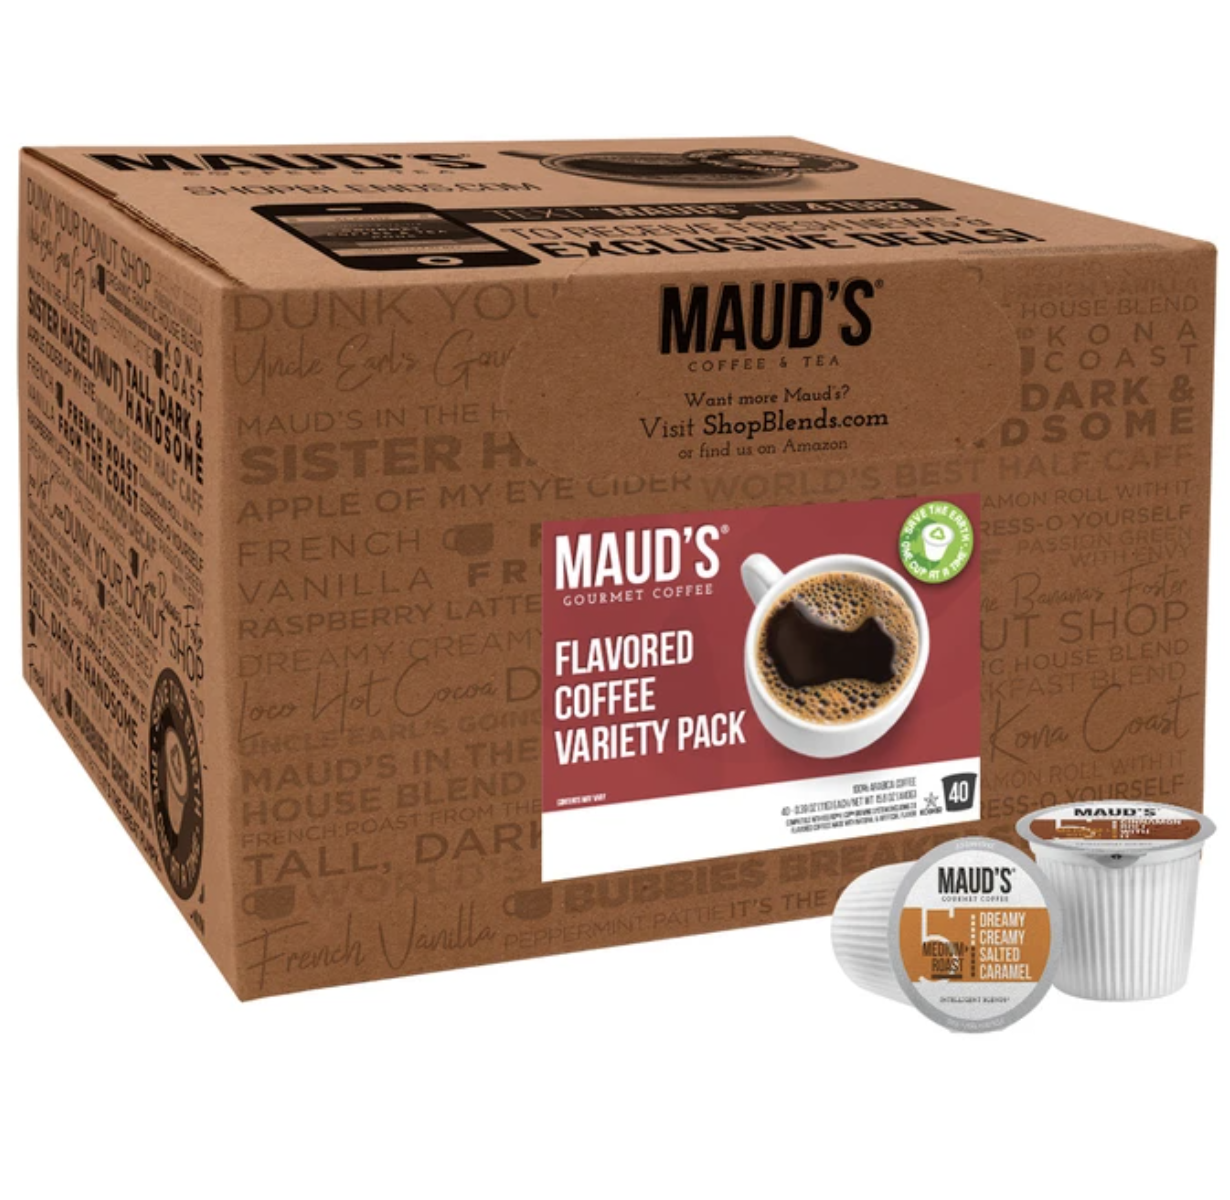 Box of Maud's Gourmet Coffee Flavored Coffee Variety Pack